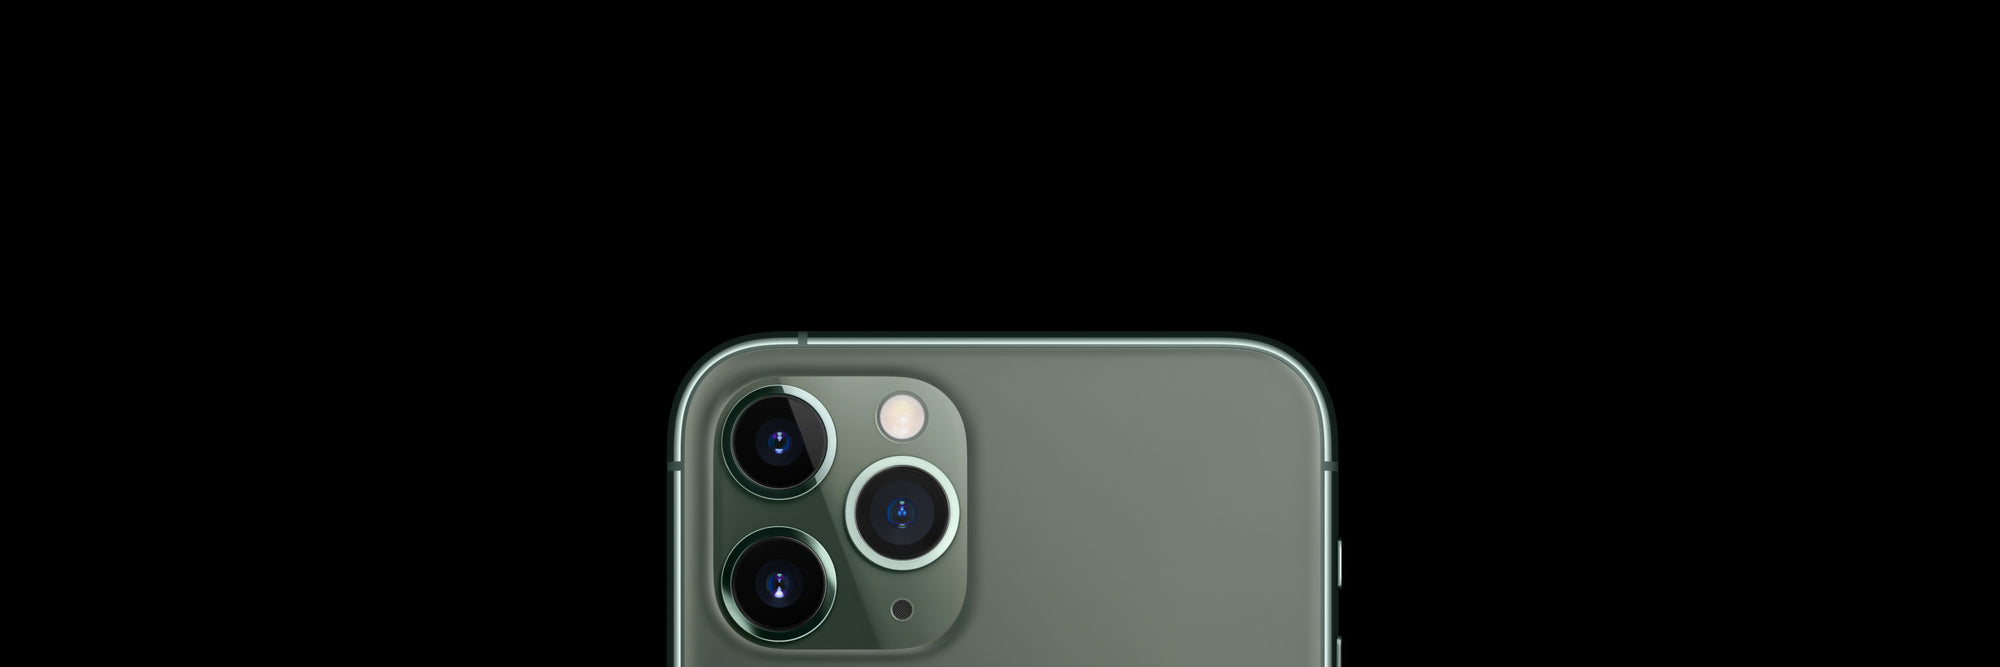 iPhone 11 | 11 Pro | 11 Pro Max - Cases & Accessories